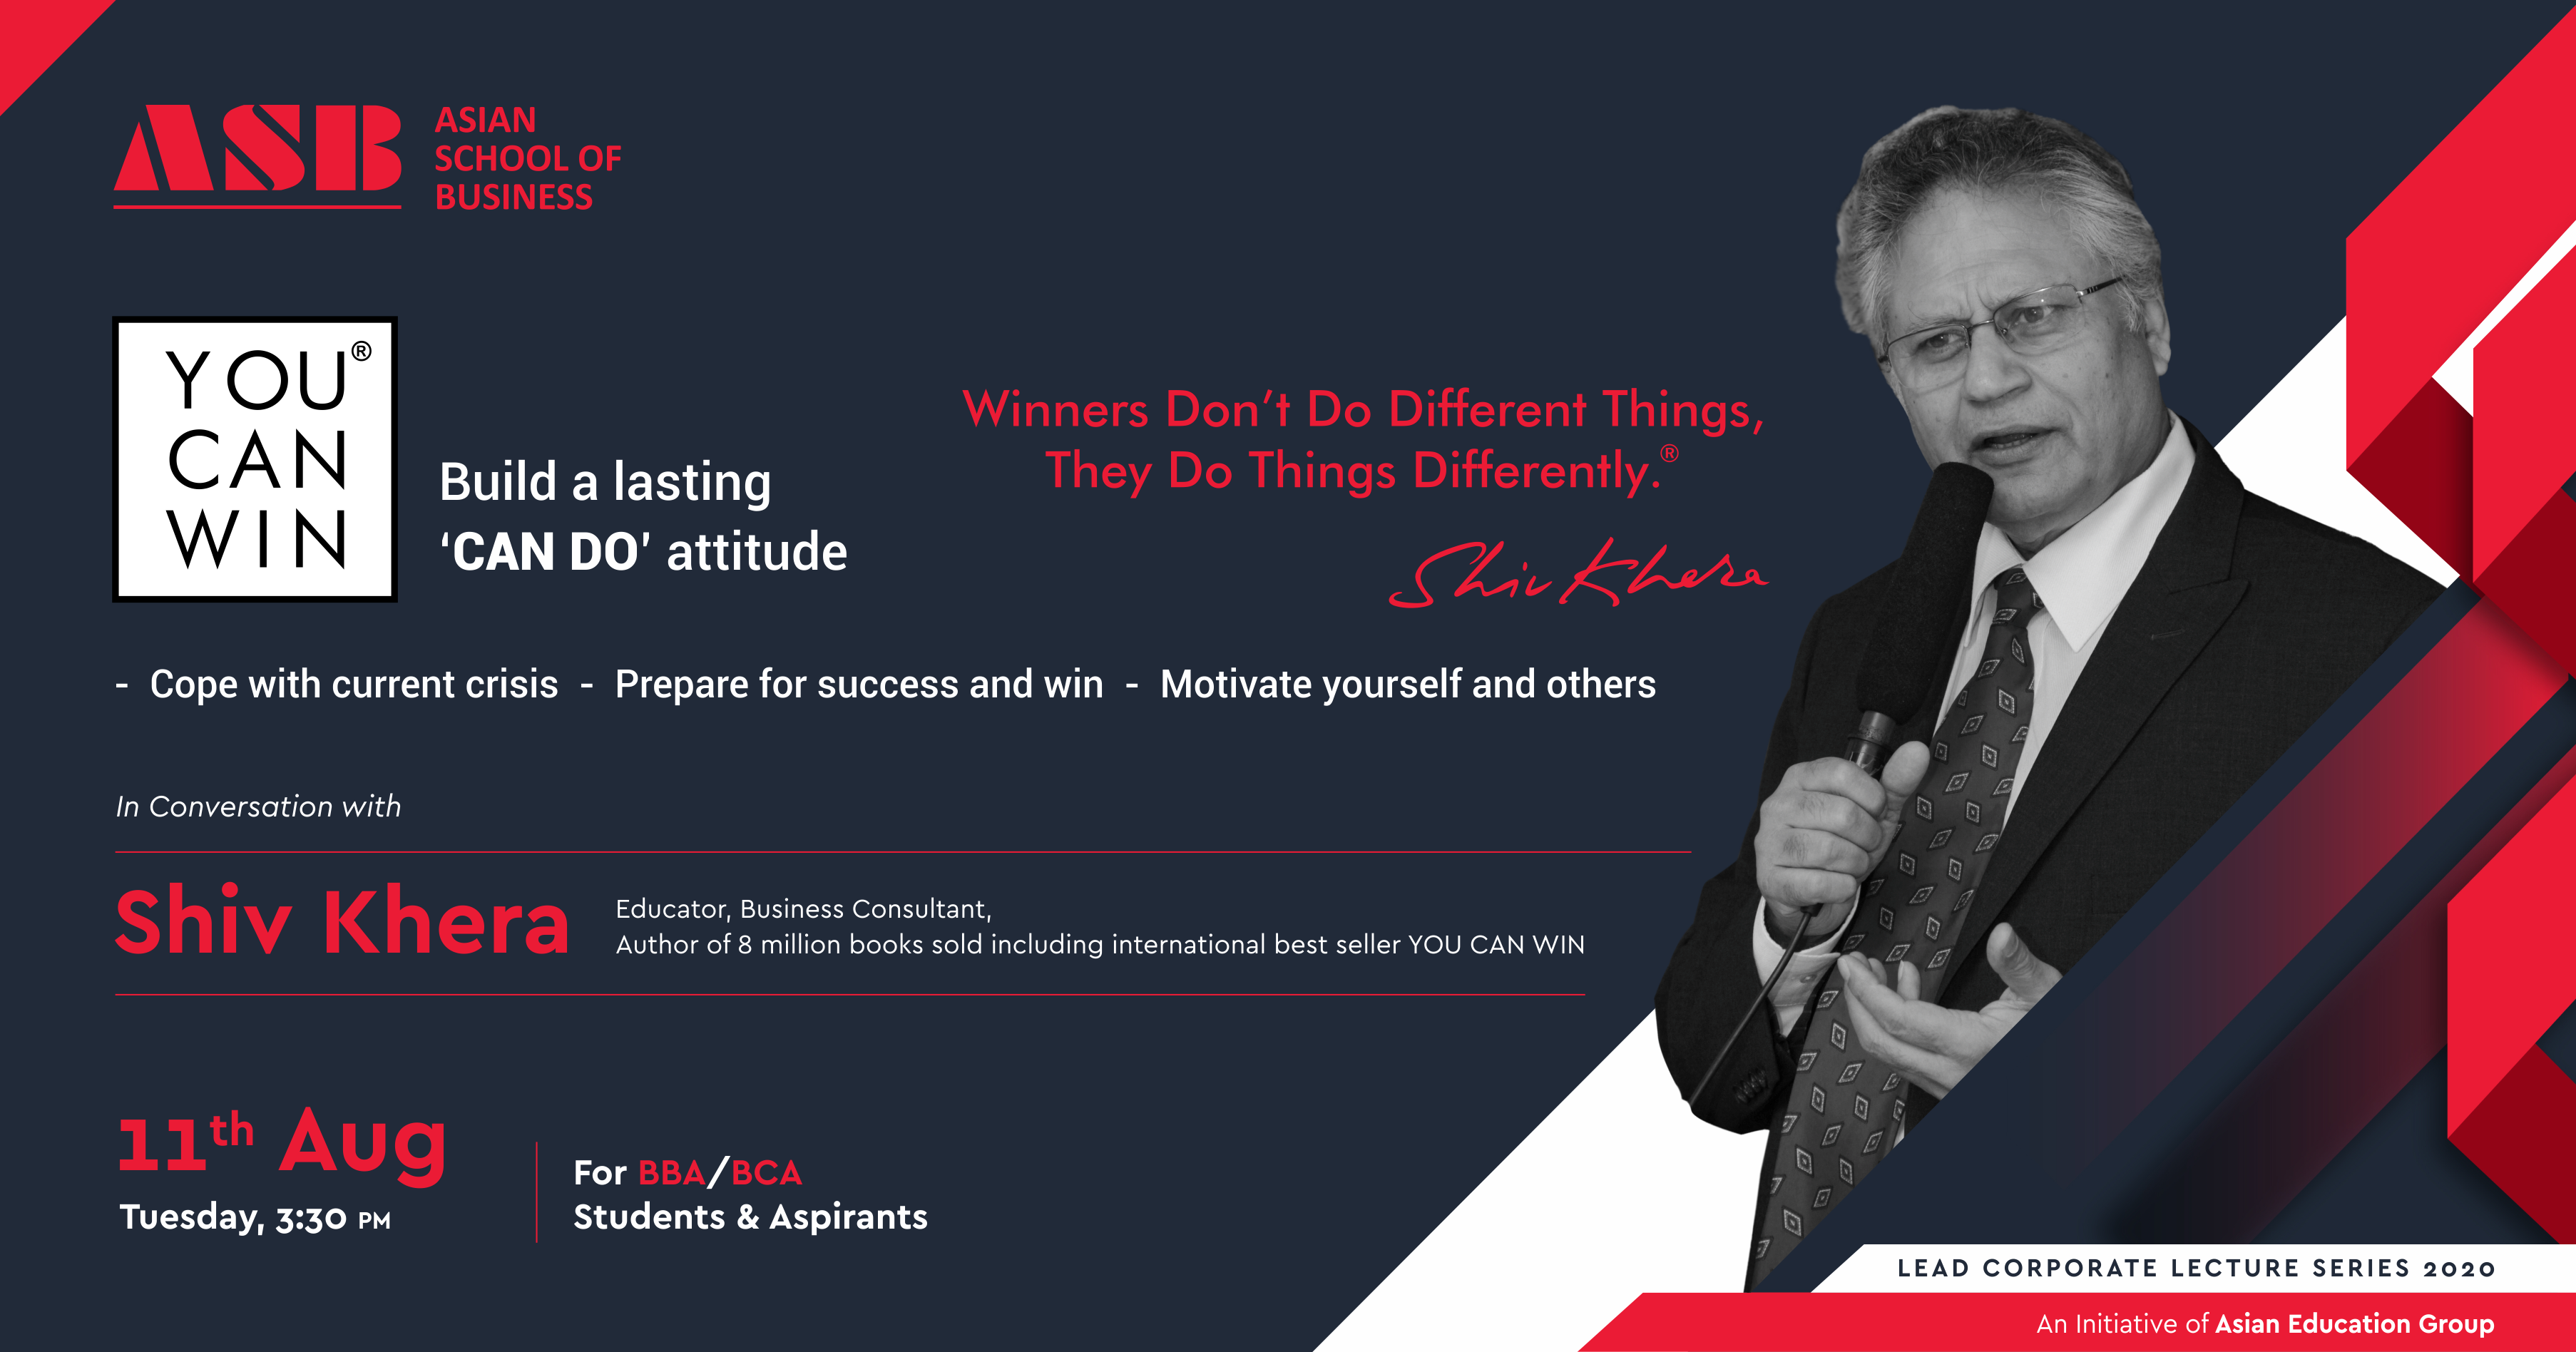 """ASB to Host Shiv Khera of International Best Seller """"You Can Win"""" Fame for an Interactive Webinar on """"Building a Lasting CAN DO Attitude"""""""